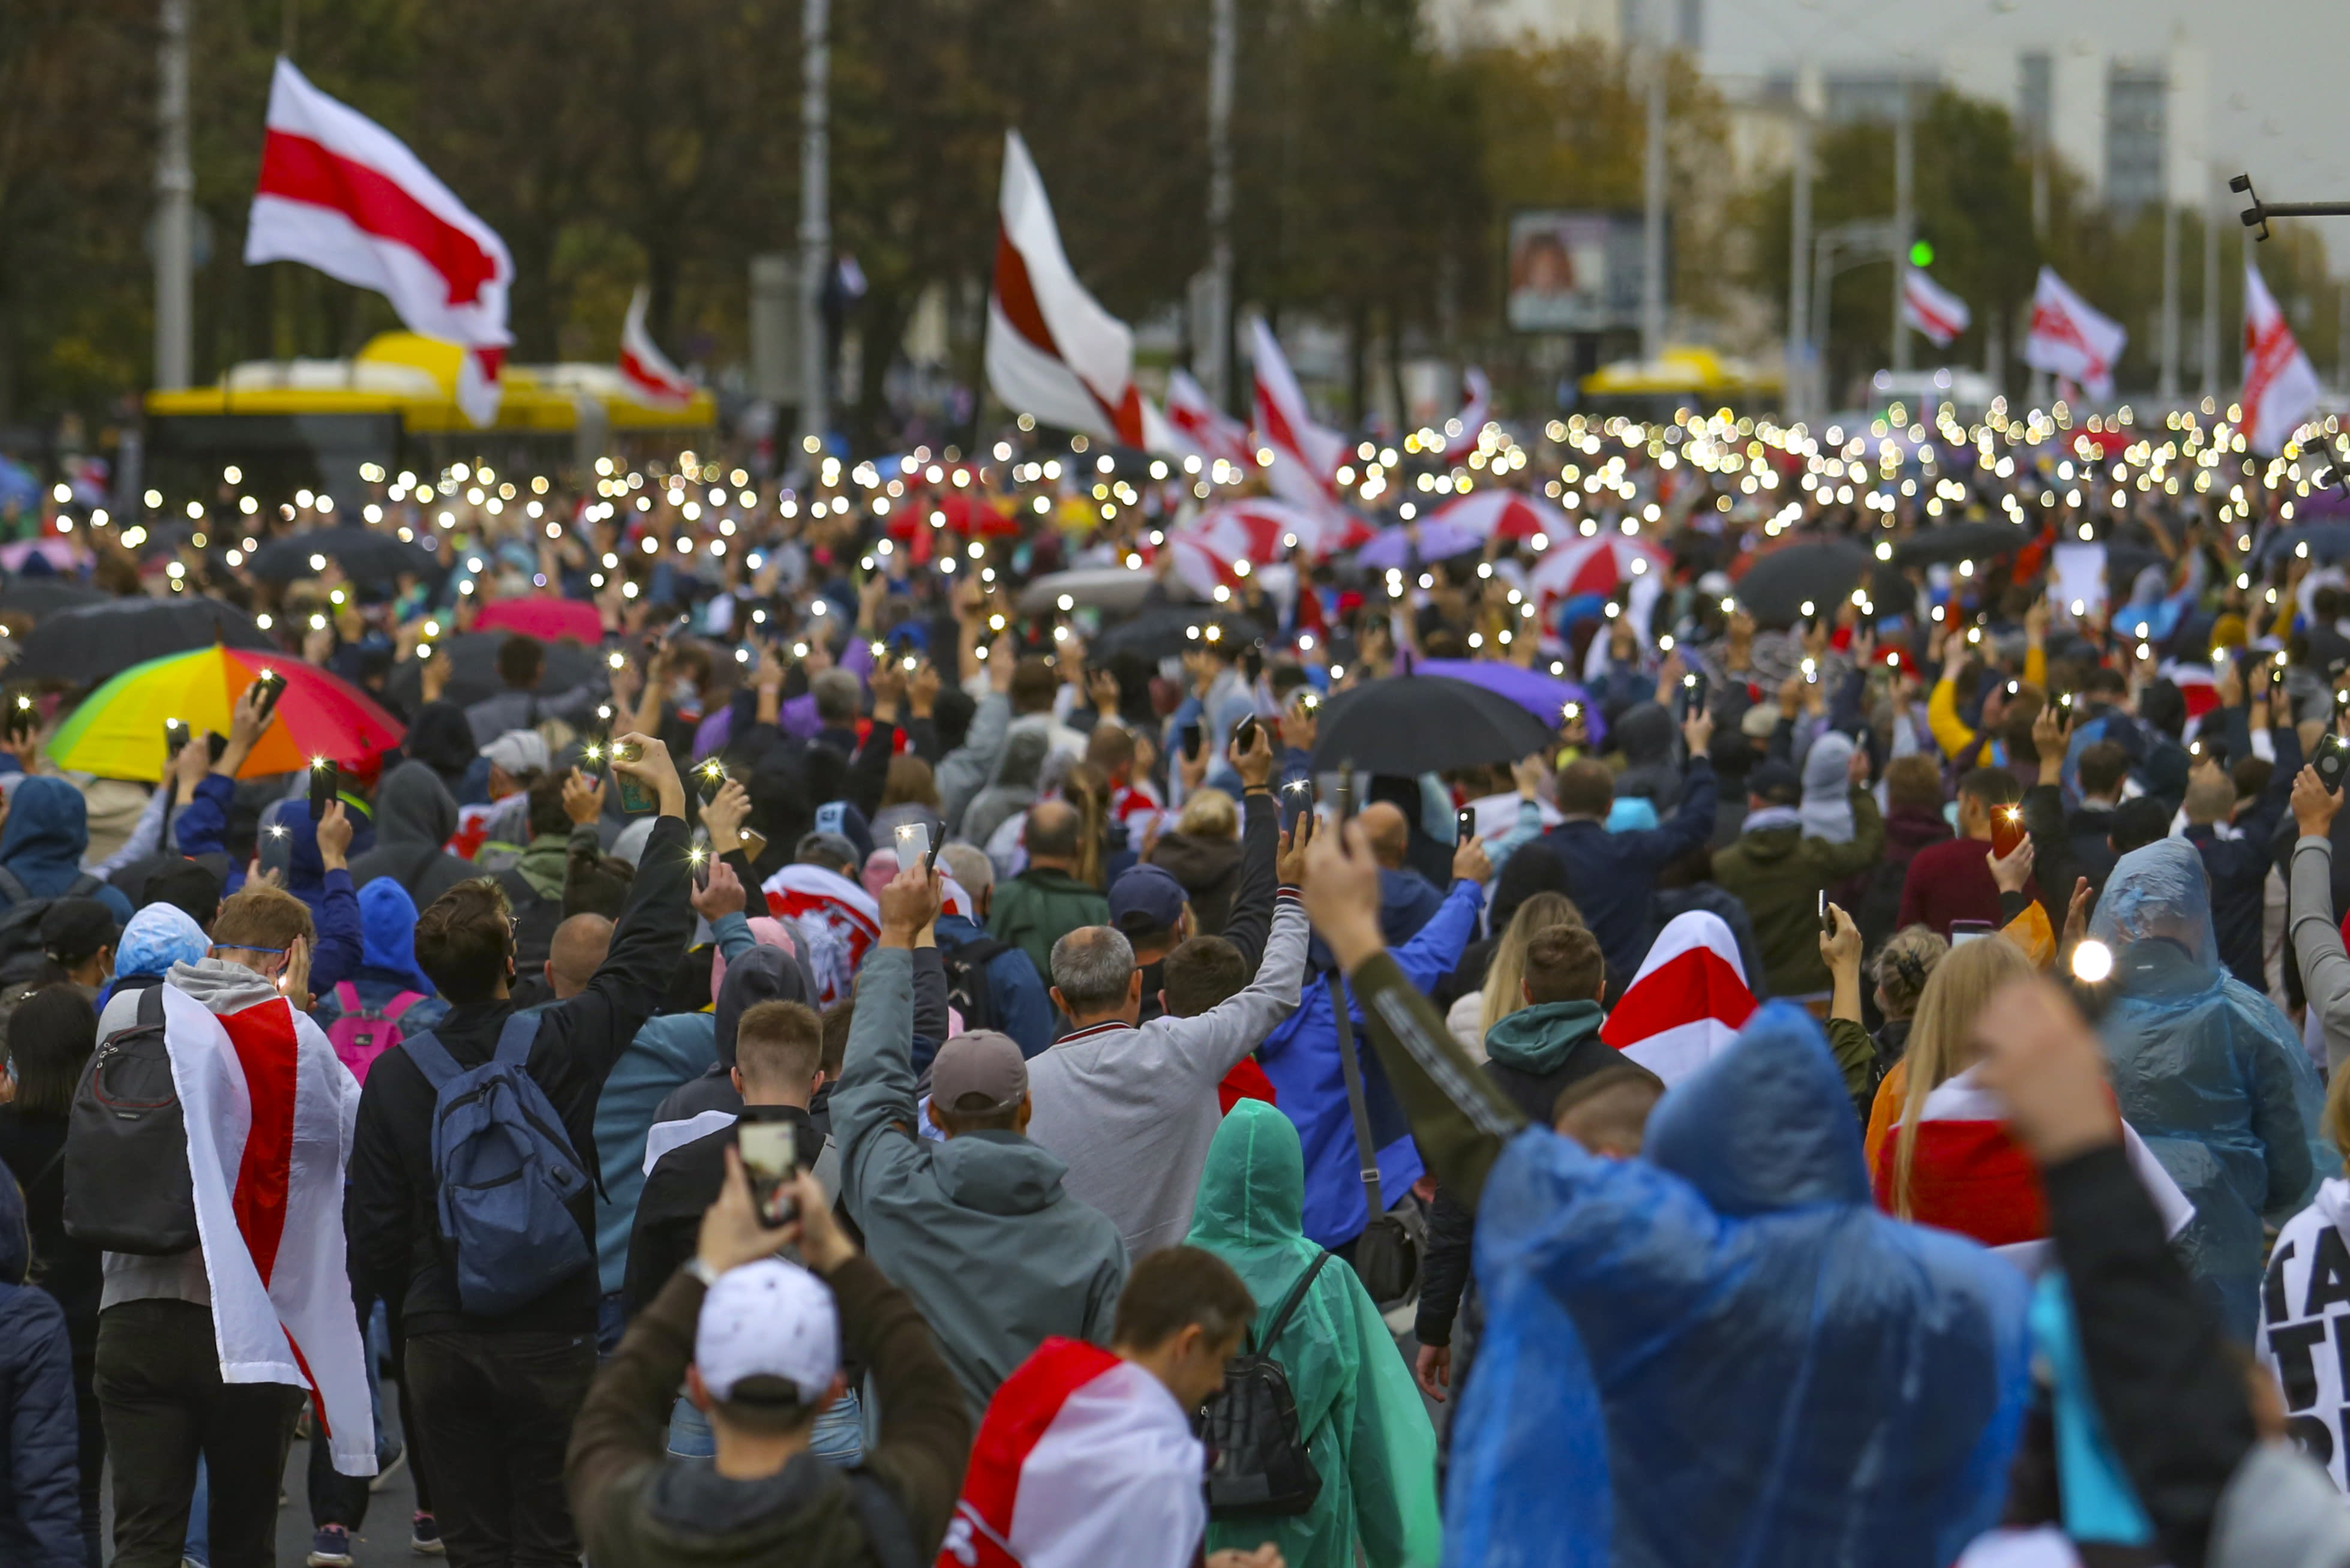 Demonstrators light their cell phones during an opposition rally to protest the official presidential election results in Minsk, Belarus, Sunday, Sept. 27, 2020. Tens of thousands of demonstrators marched in the Belarusian capital calling for the authoritarian president's ouster, some wearing cardboard crowns to ridicule him, on Sunday as the protests that have rocked the country marked their 50th consecutive day. (AP Photo/TUT.by)